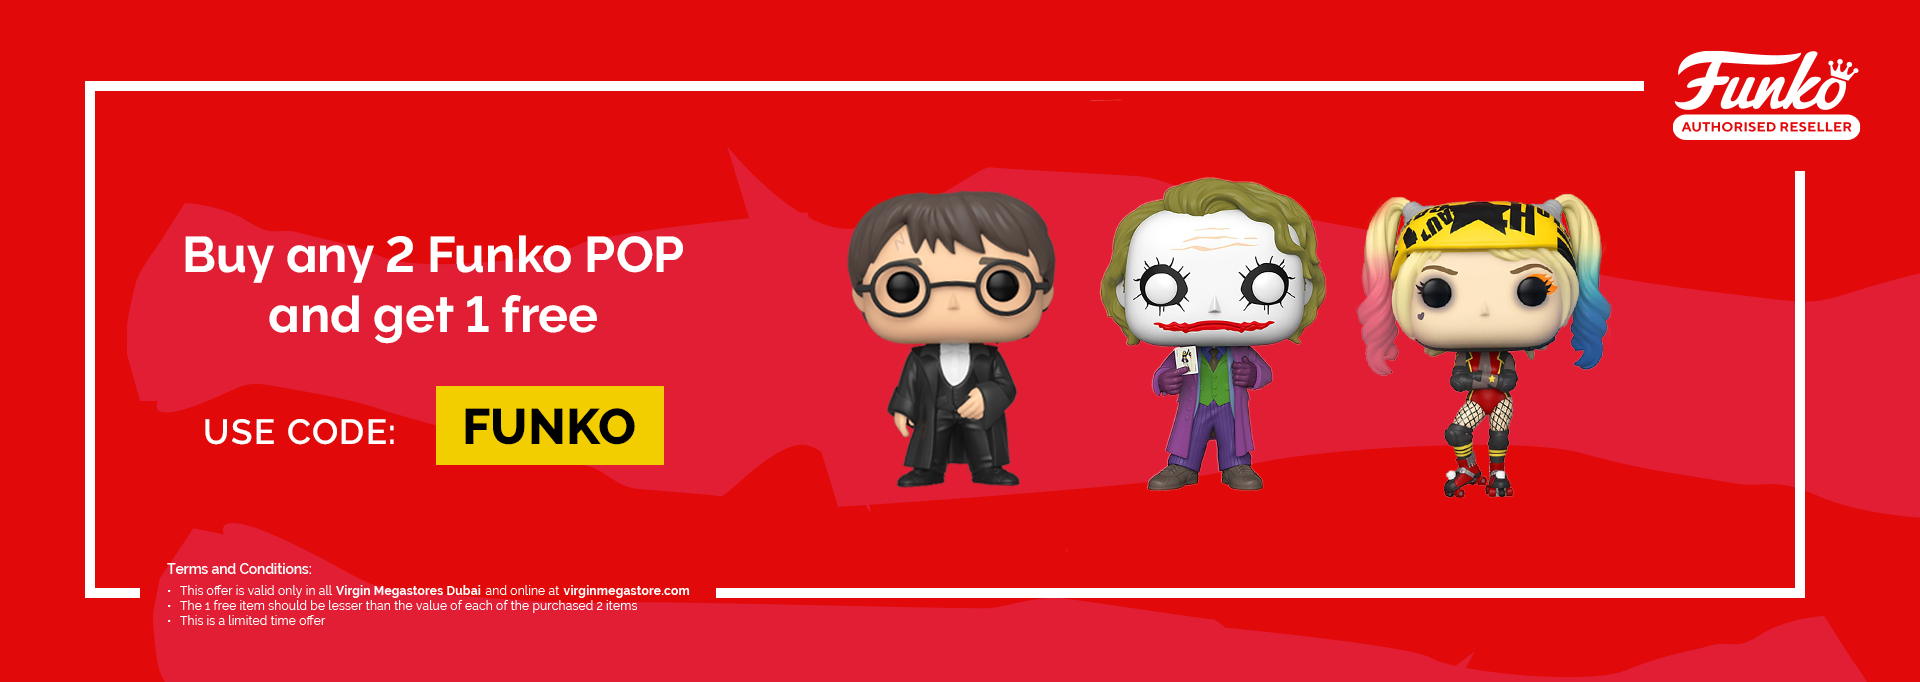 FUNKO POP BUY TWO GET ONE.png